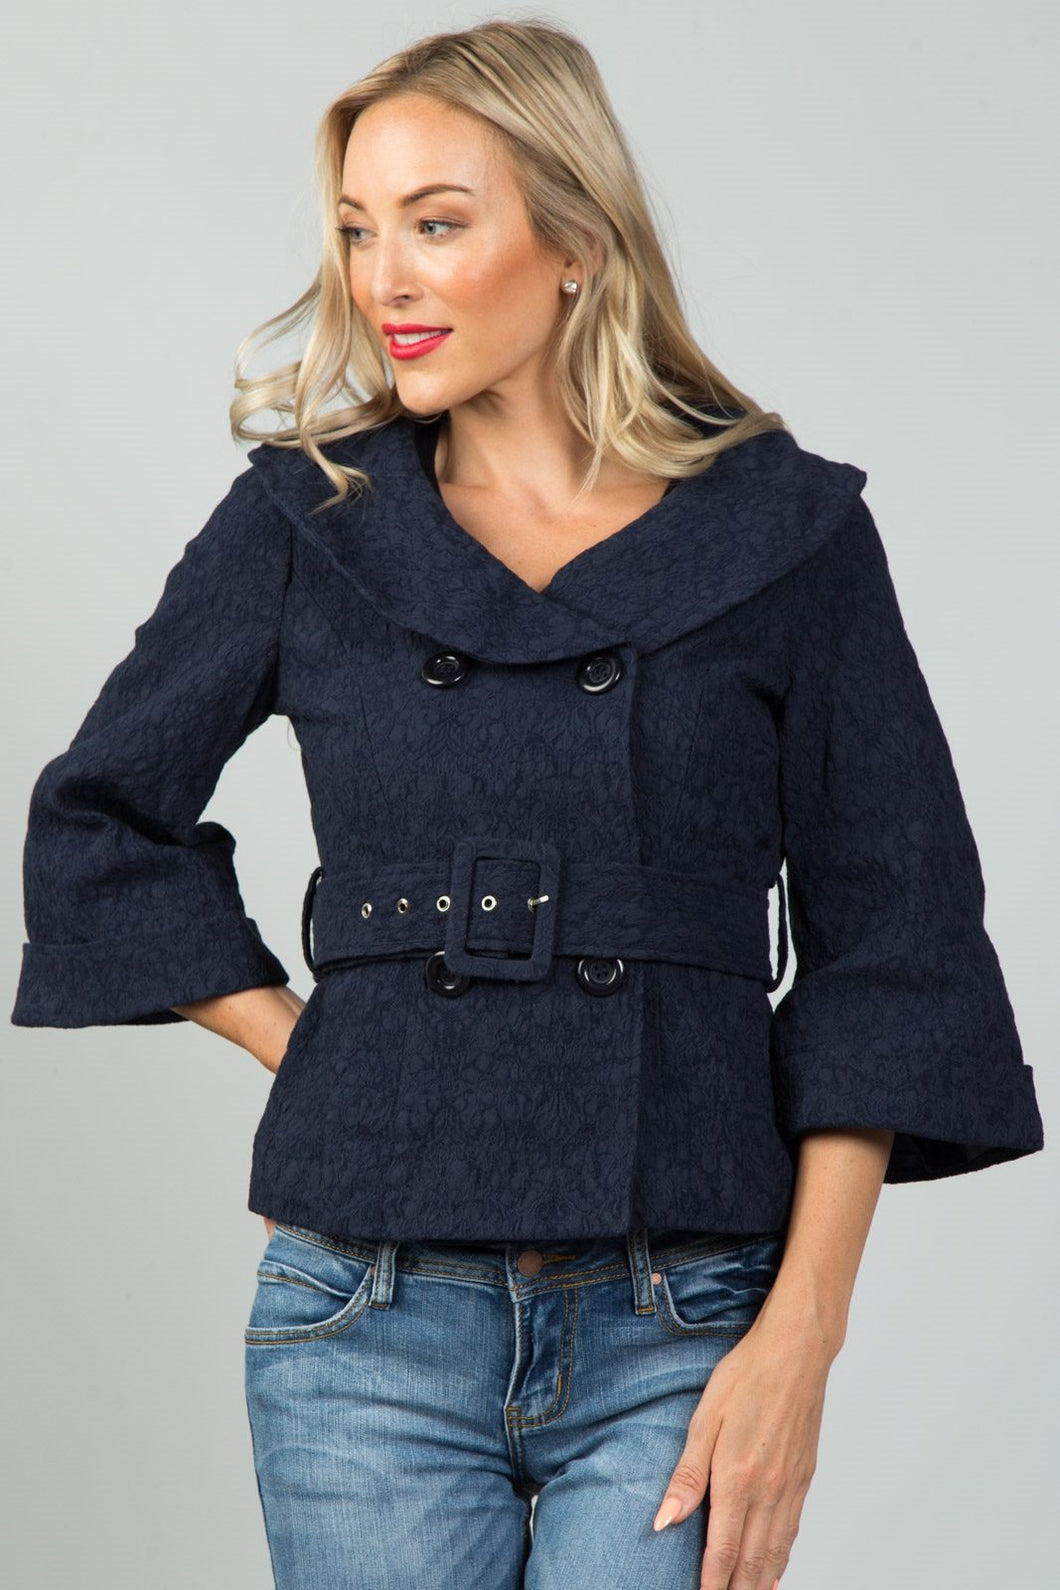 Ladies fashion textured double breasted jacket - comfy-cozy18